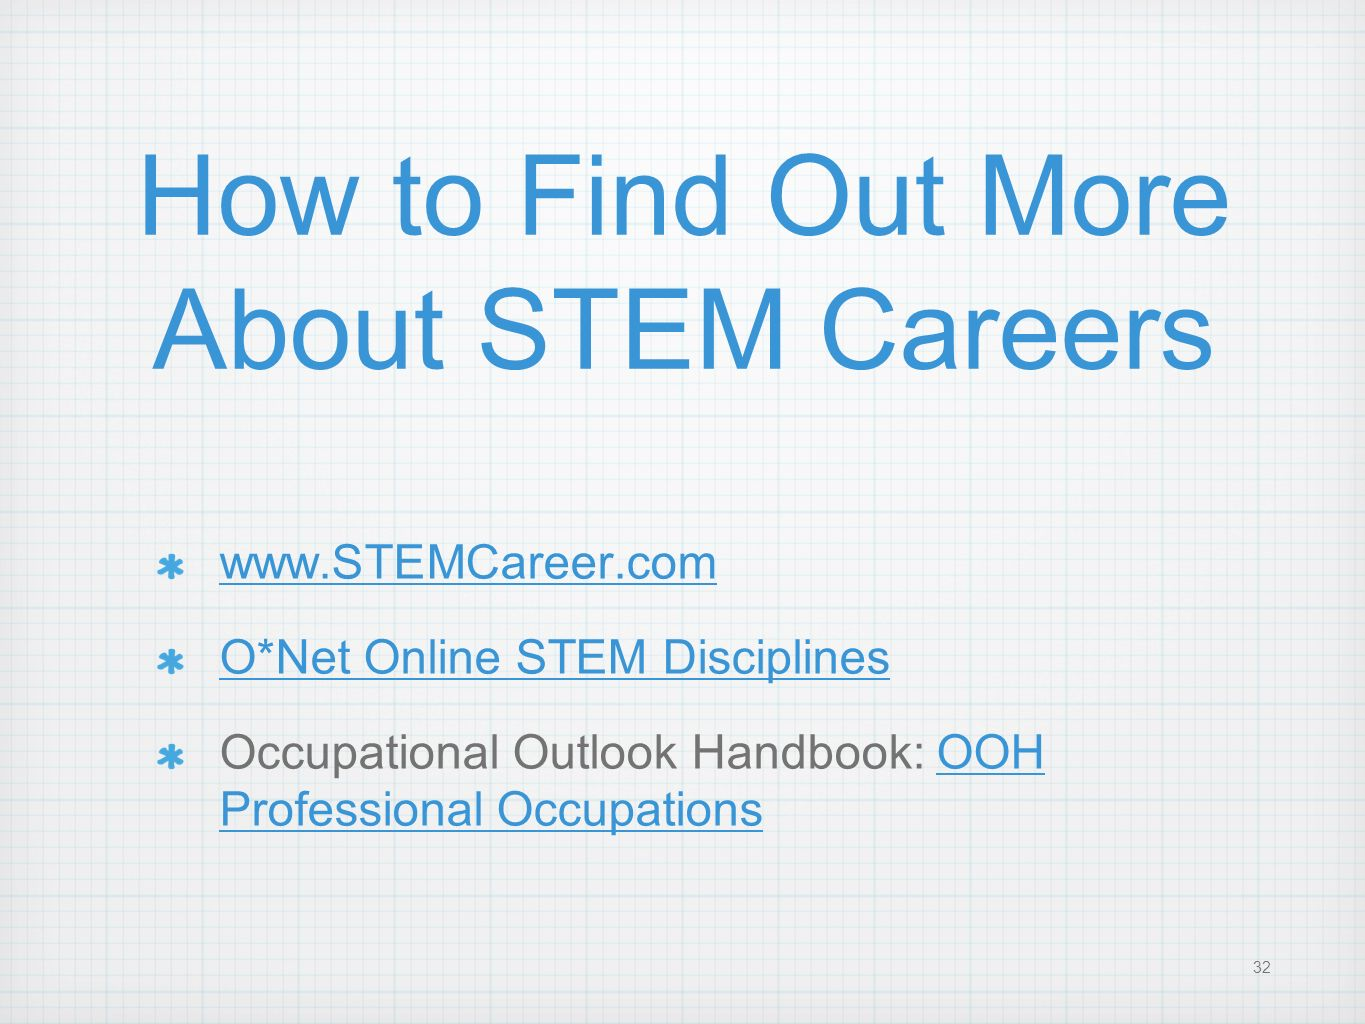 How to Find Out More About STEM Careers